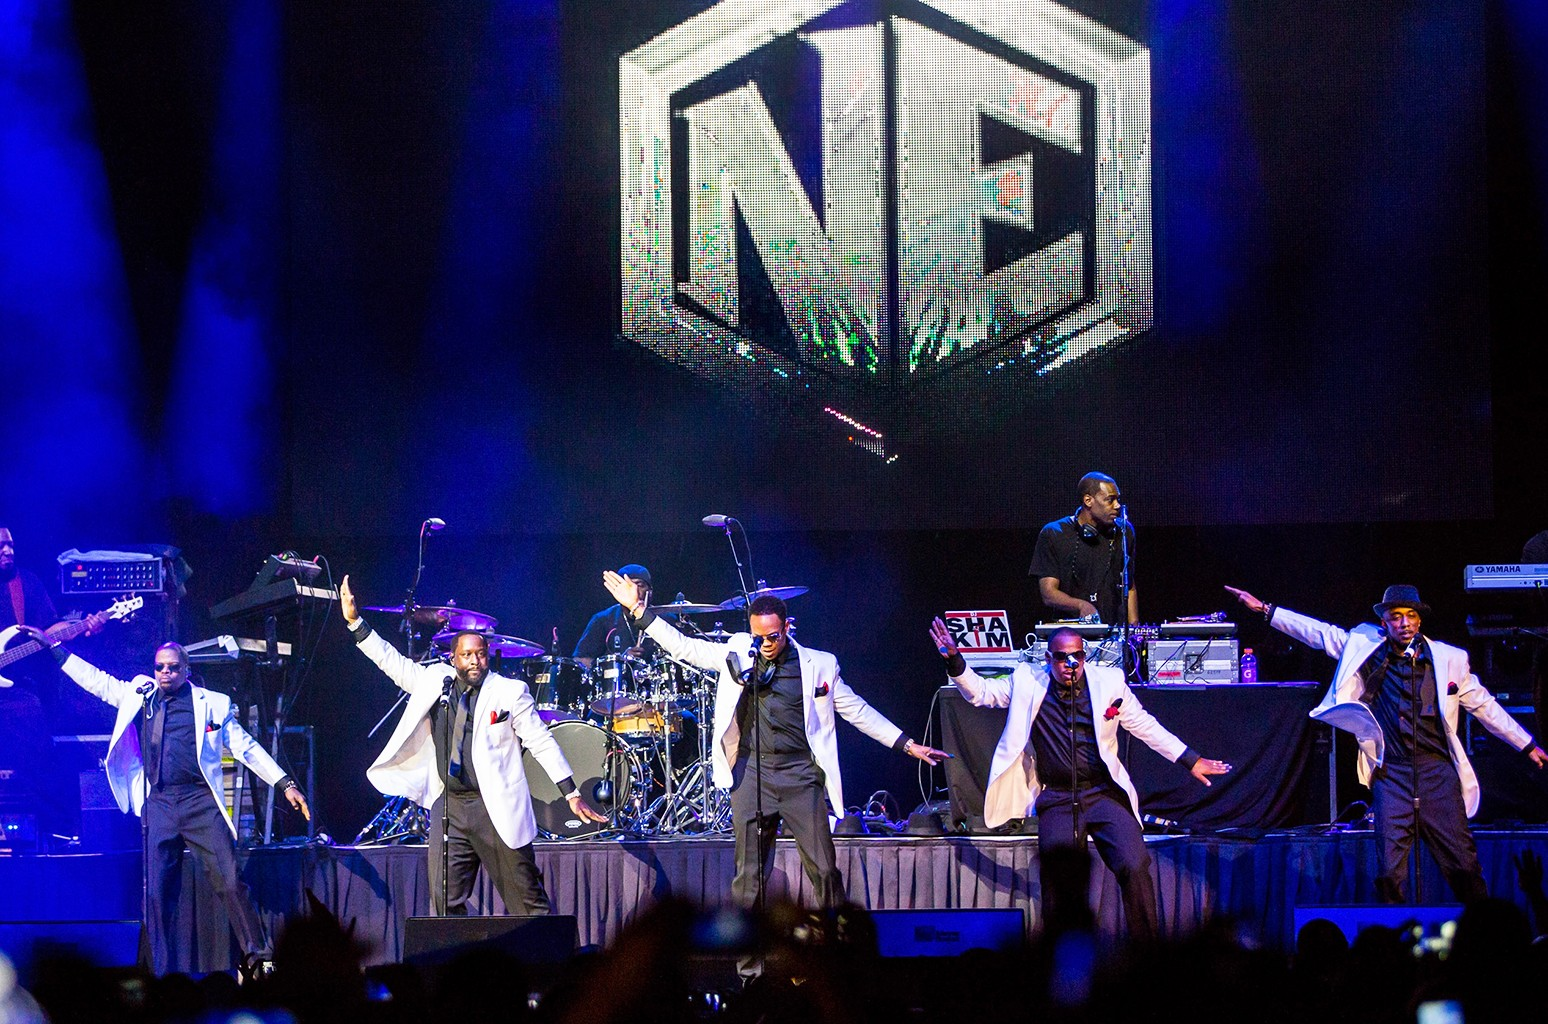 New Edition performs at Joe Louis Arena during the Holiday Jam on Dec. 12, 2015 in Detroit, Michigan.